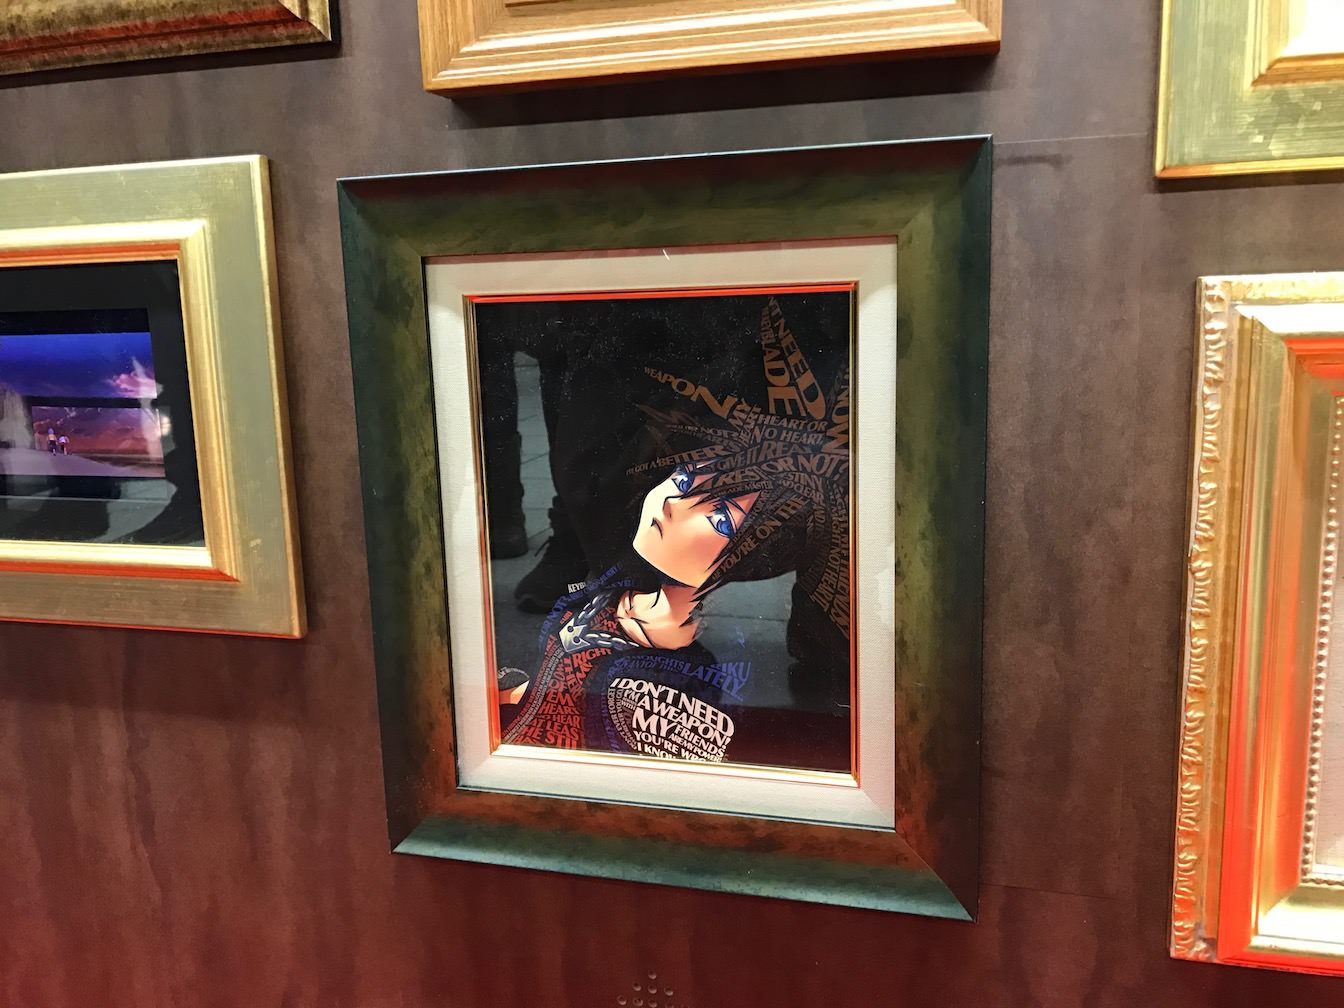 Kingdomhearts 15th anniversary exhibition at shinjuku 21